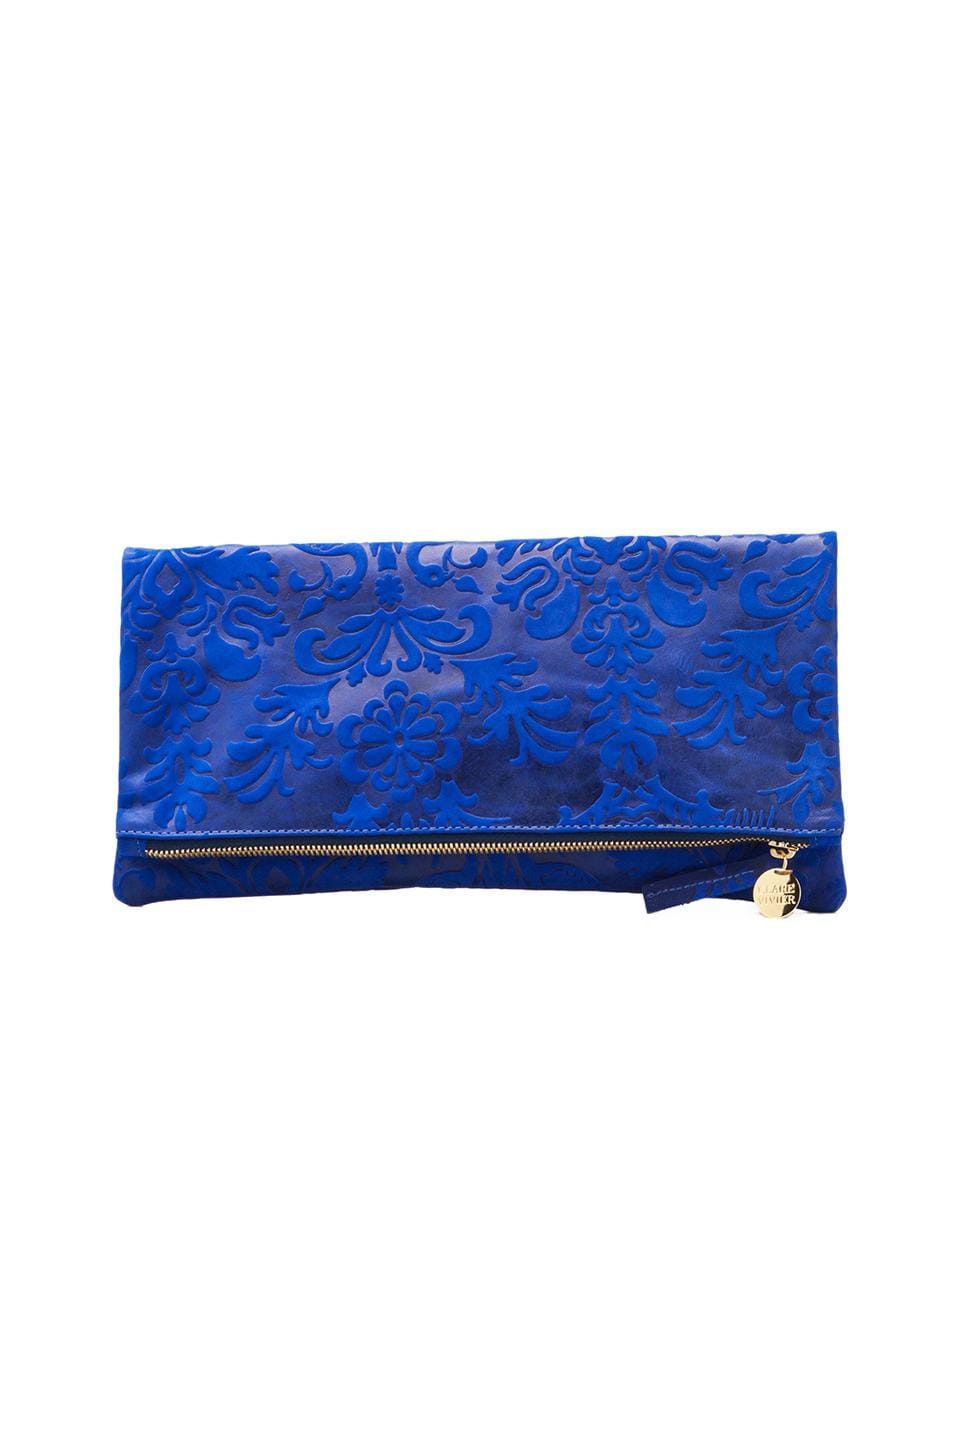 Clare V. Foldover Clutch Brocade in Royal Blue